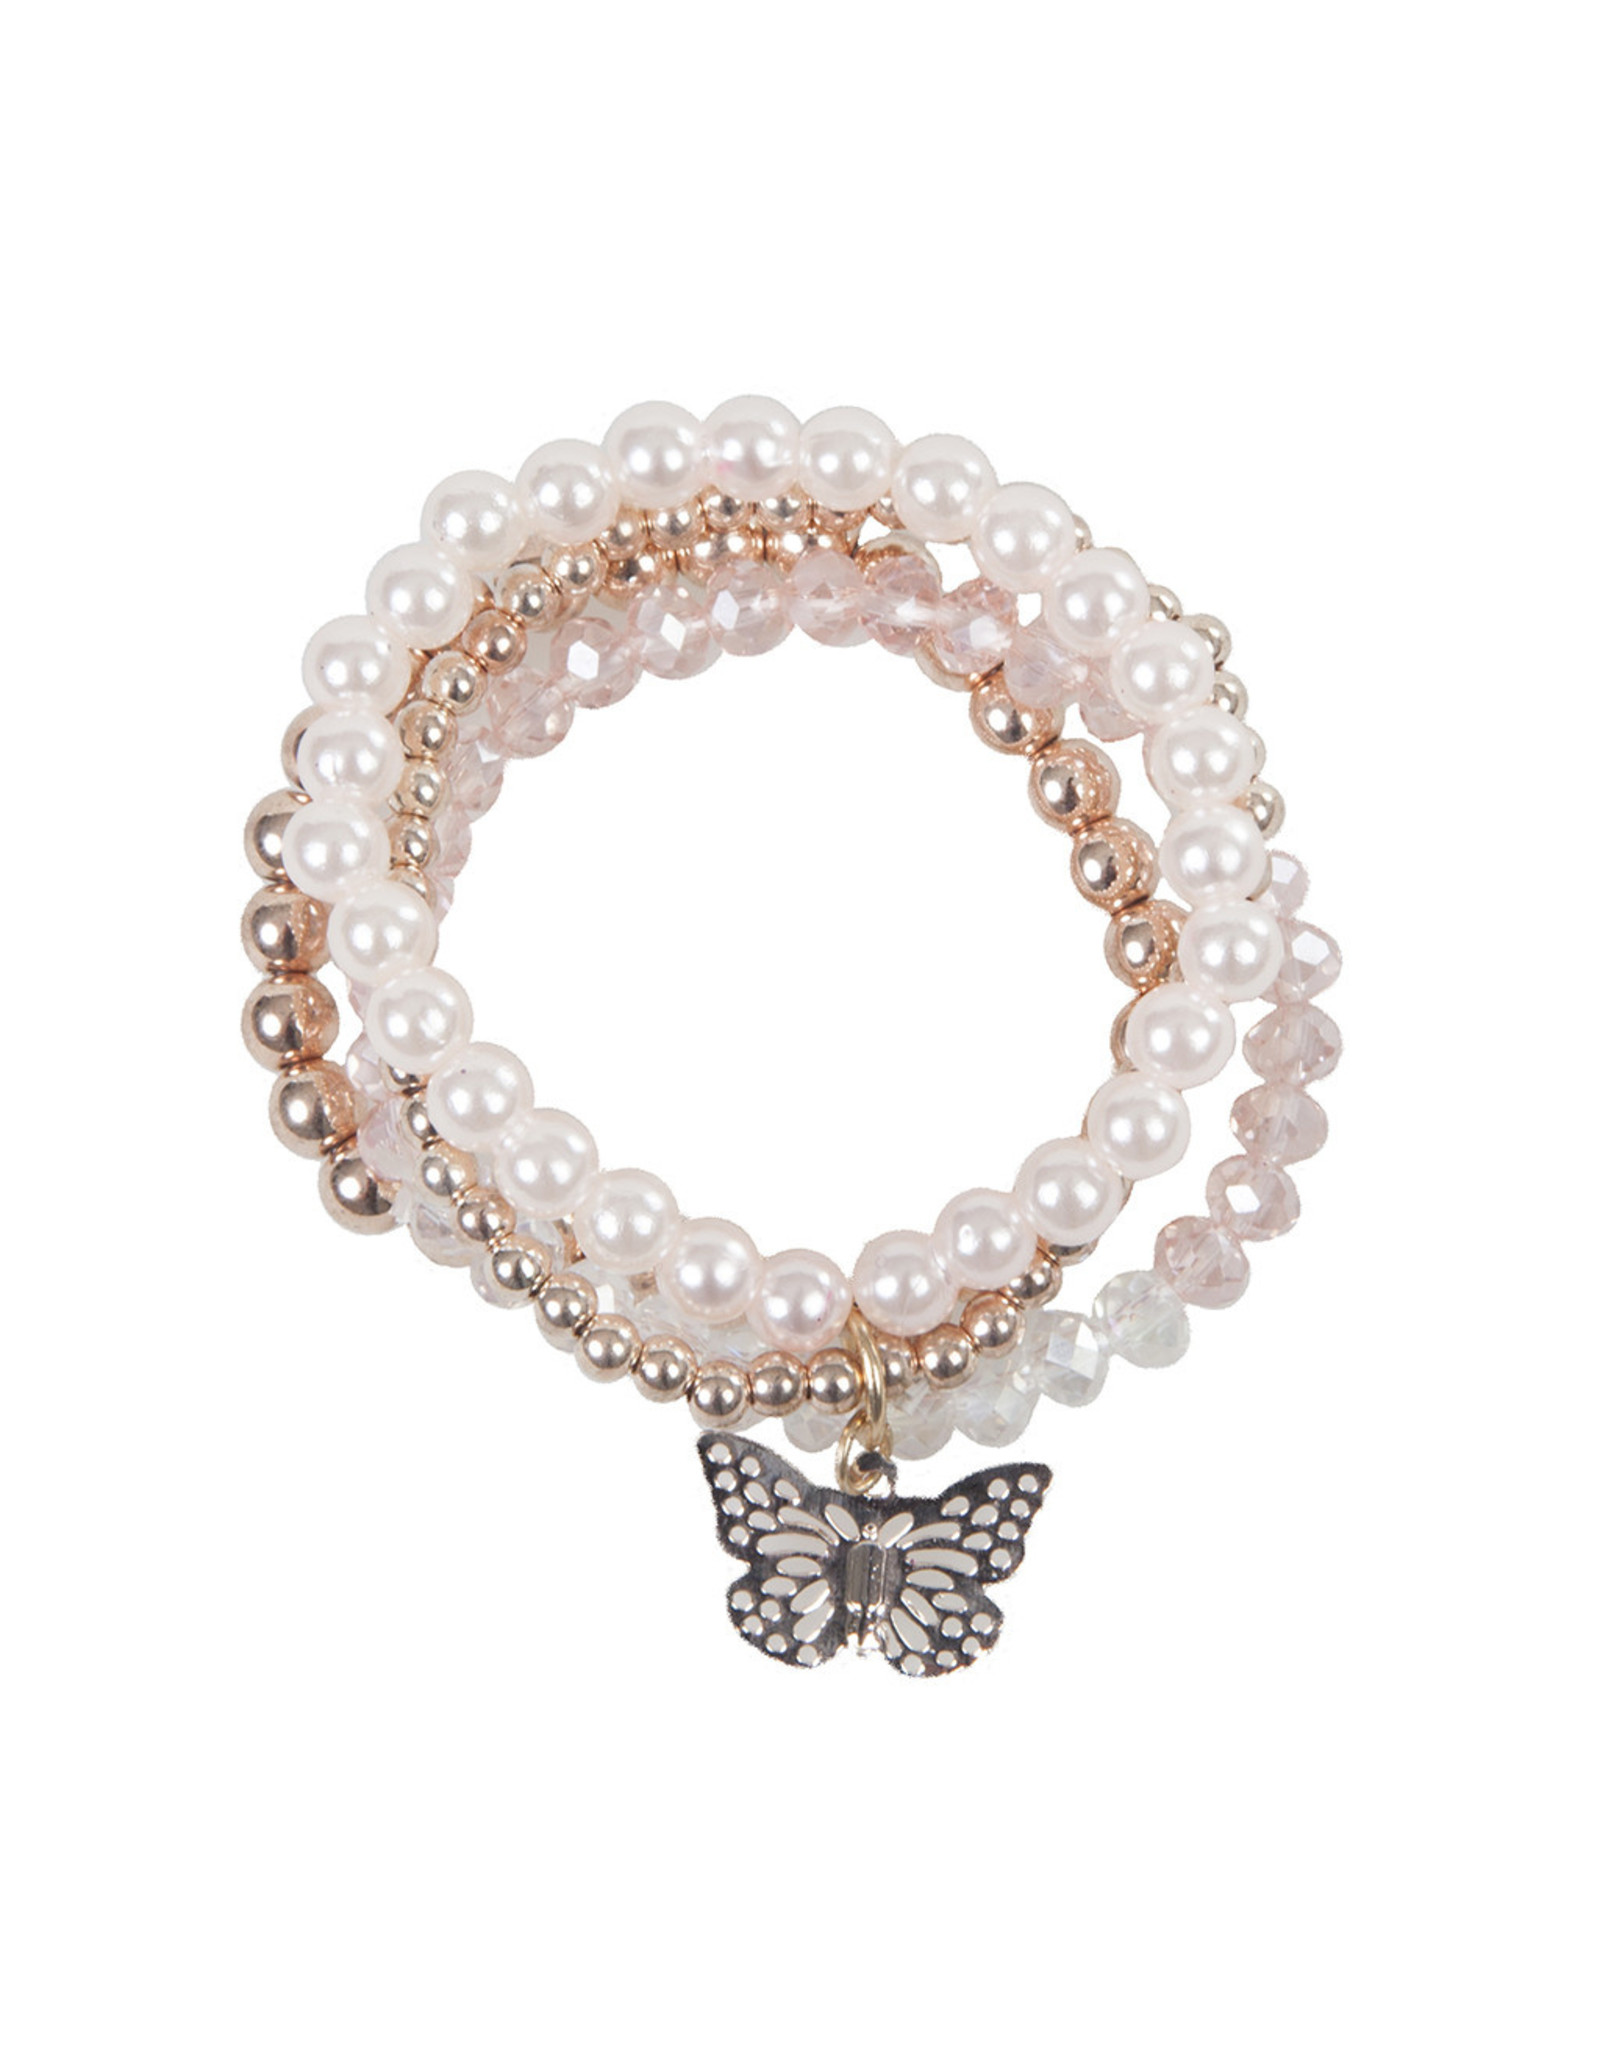 CREATIVE EDUCATION Blush Crush Bracelet Set